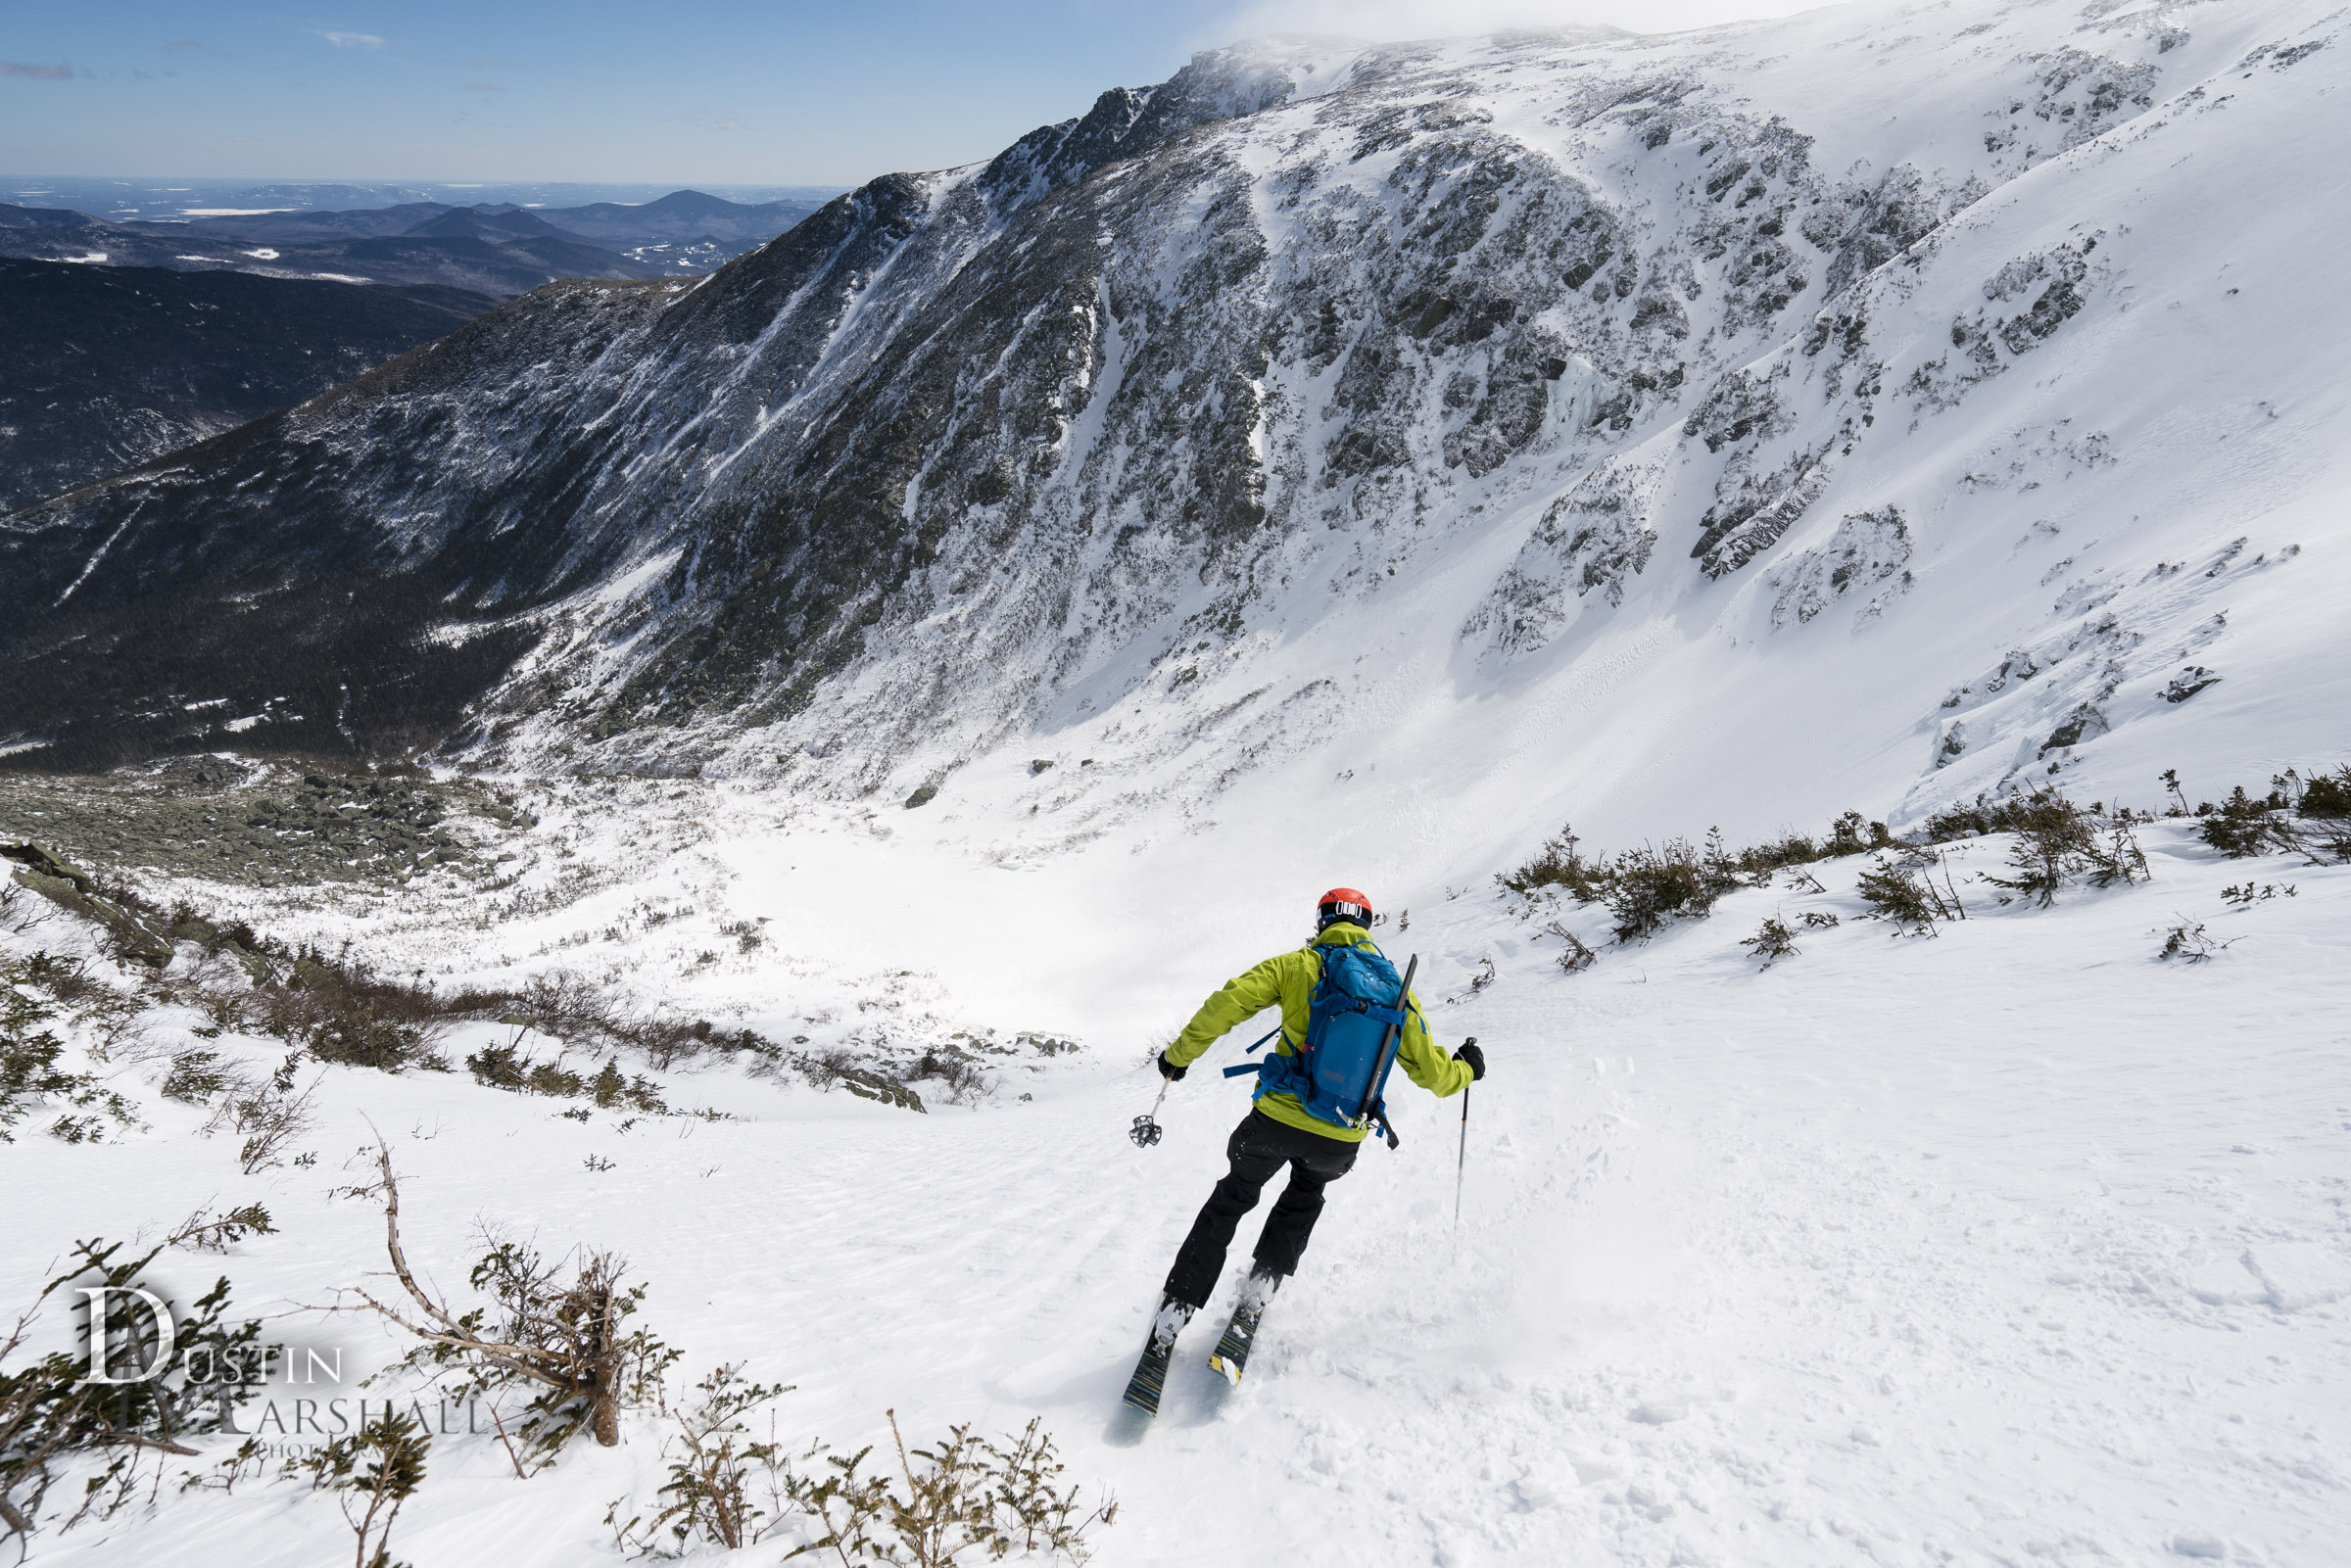 A jump turn at the top of sluice, Tuckerman Ravine